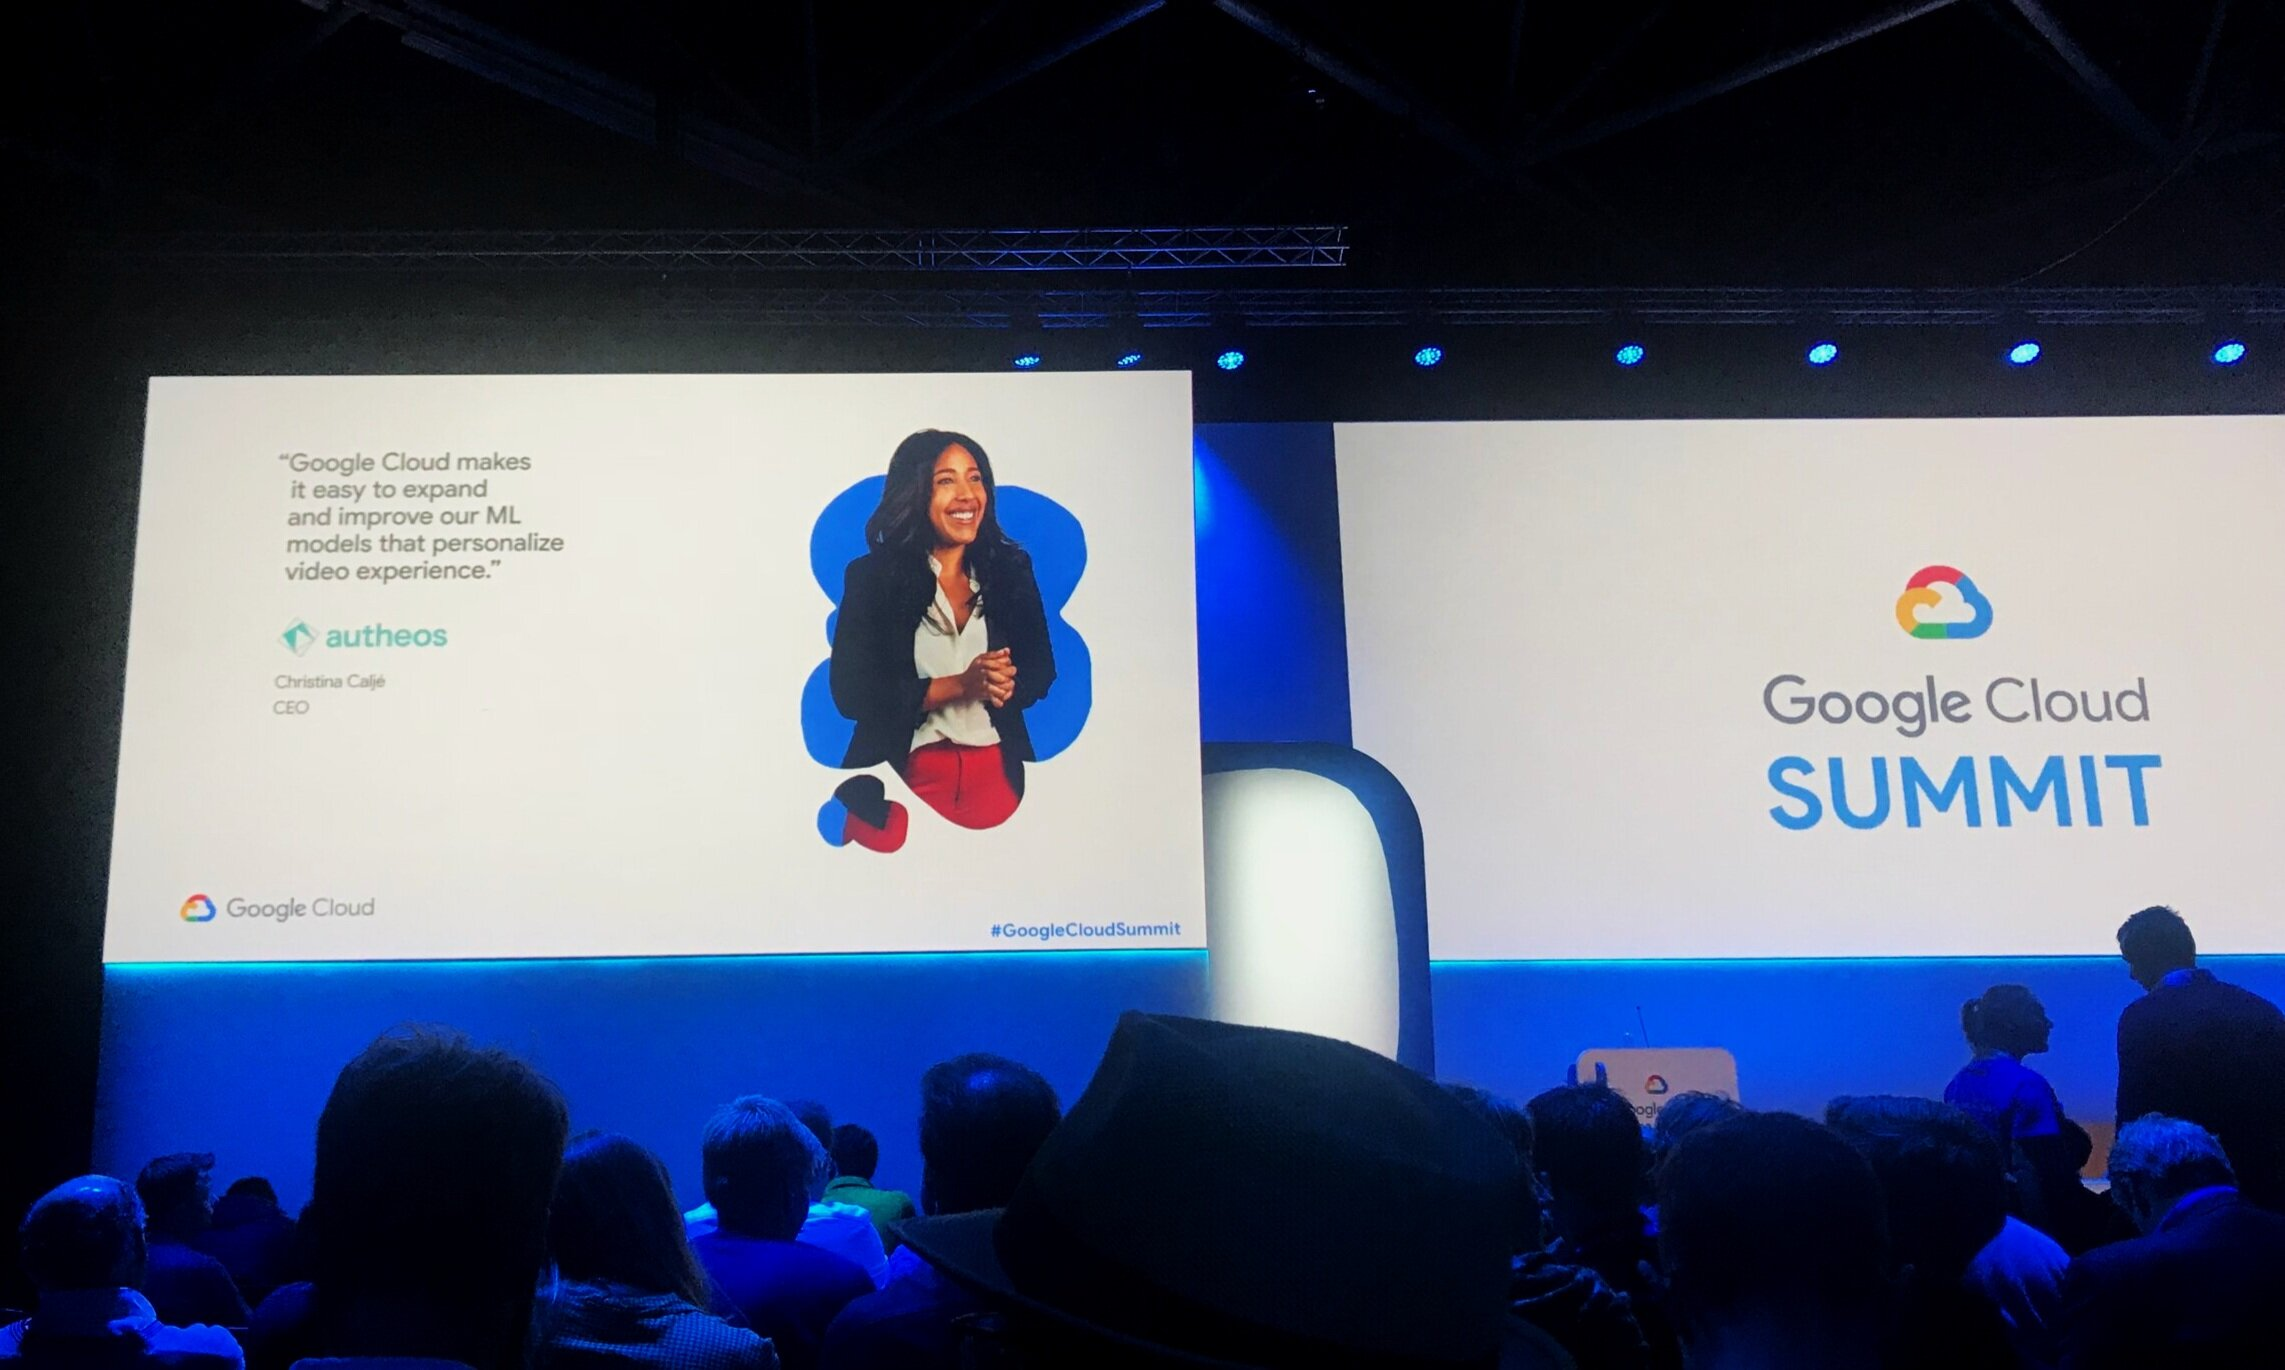 Christina Caljé and Autheos featured as client case study at Google Cloud Summit